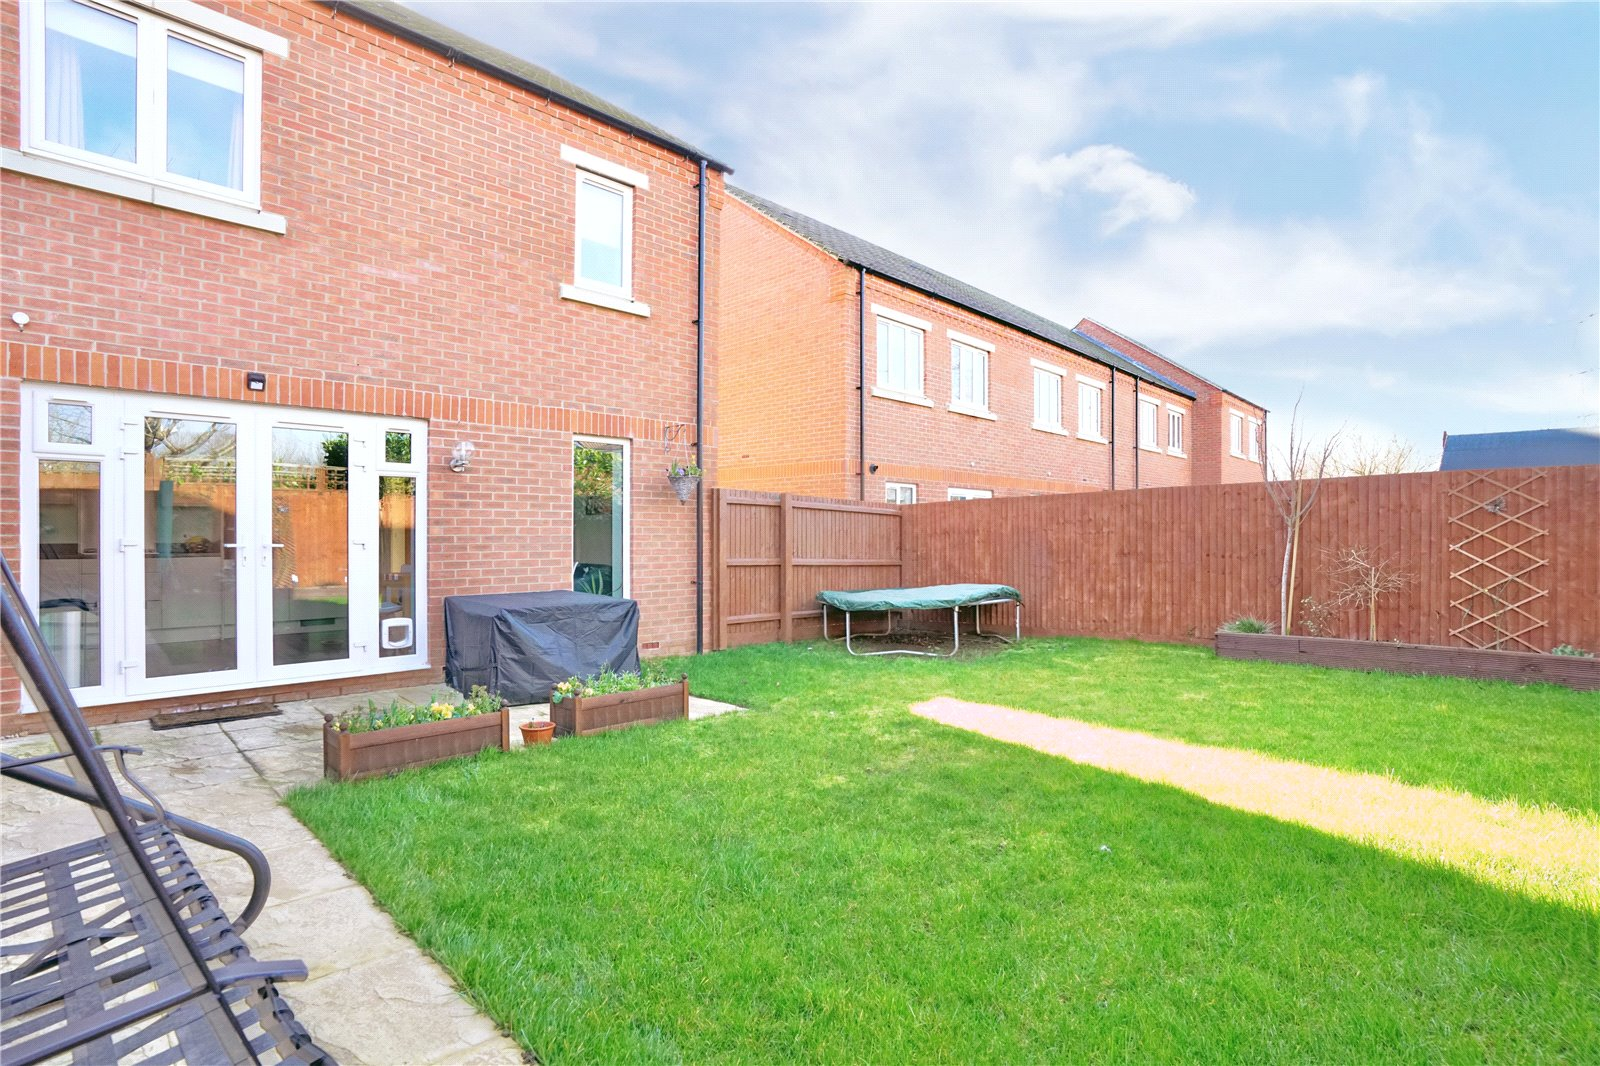 4 bed house for sale in Whinfell Close, Eaton Socon 12